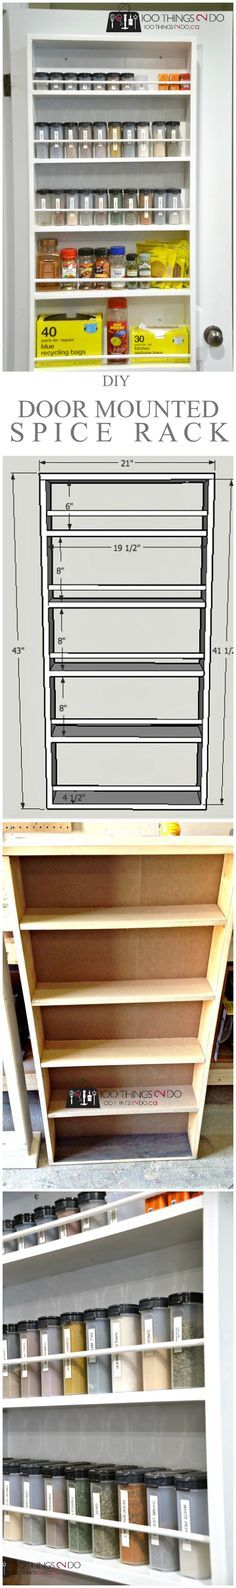 Spice Rack Drawer And Insert Also On Page Good Idea